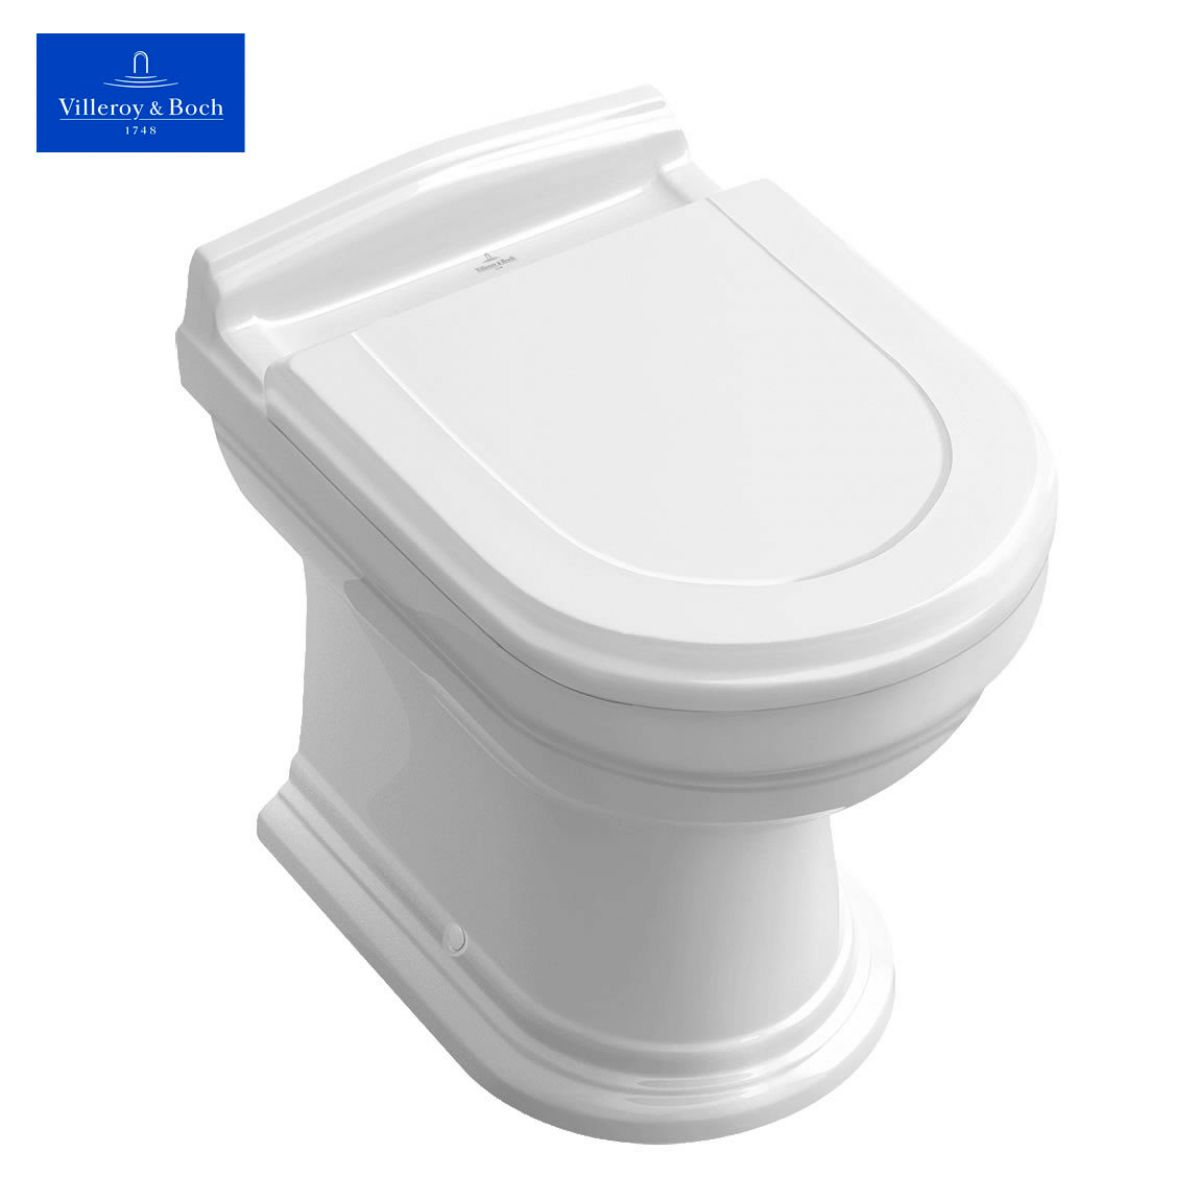 villeroy boch hommage back to wall wc uk bathrooms. Black Bedroom Furniture Sets. Home Design Ideas